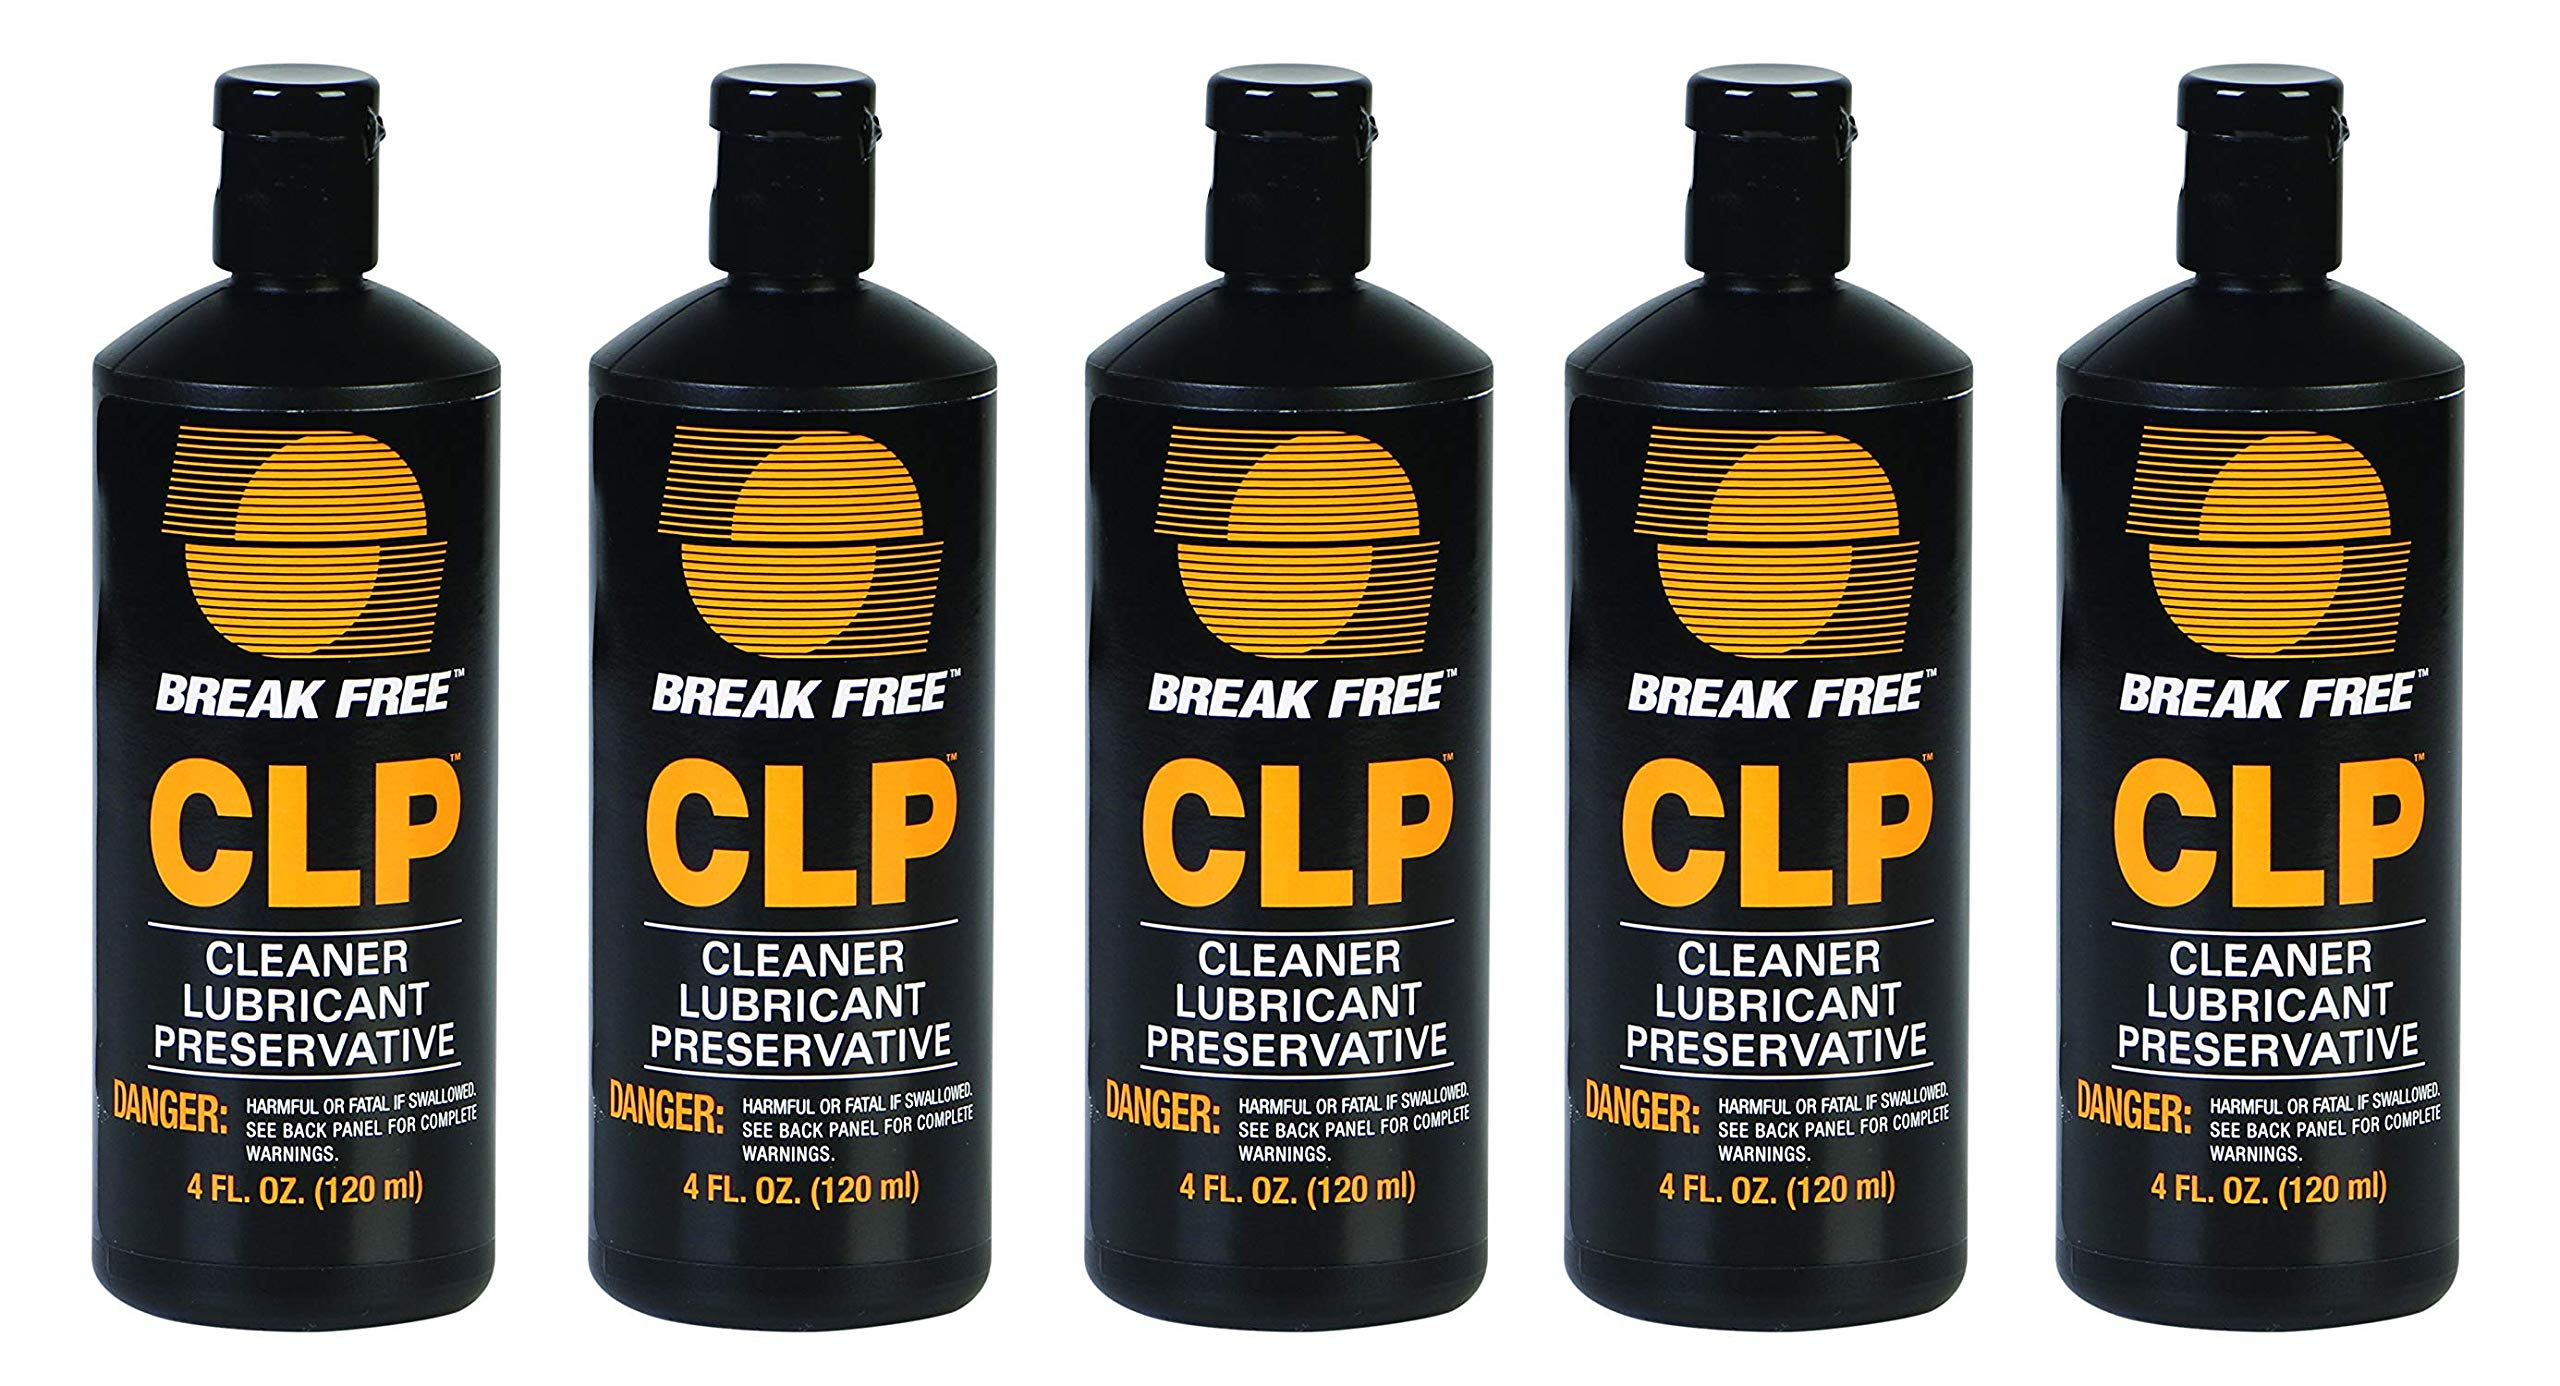 BreakFree CLP-4 Cleaner Lubricant Preservative Squeeze Bottle (4 -Fluid Ounce) (5-(Pack))